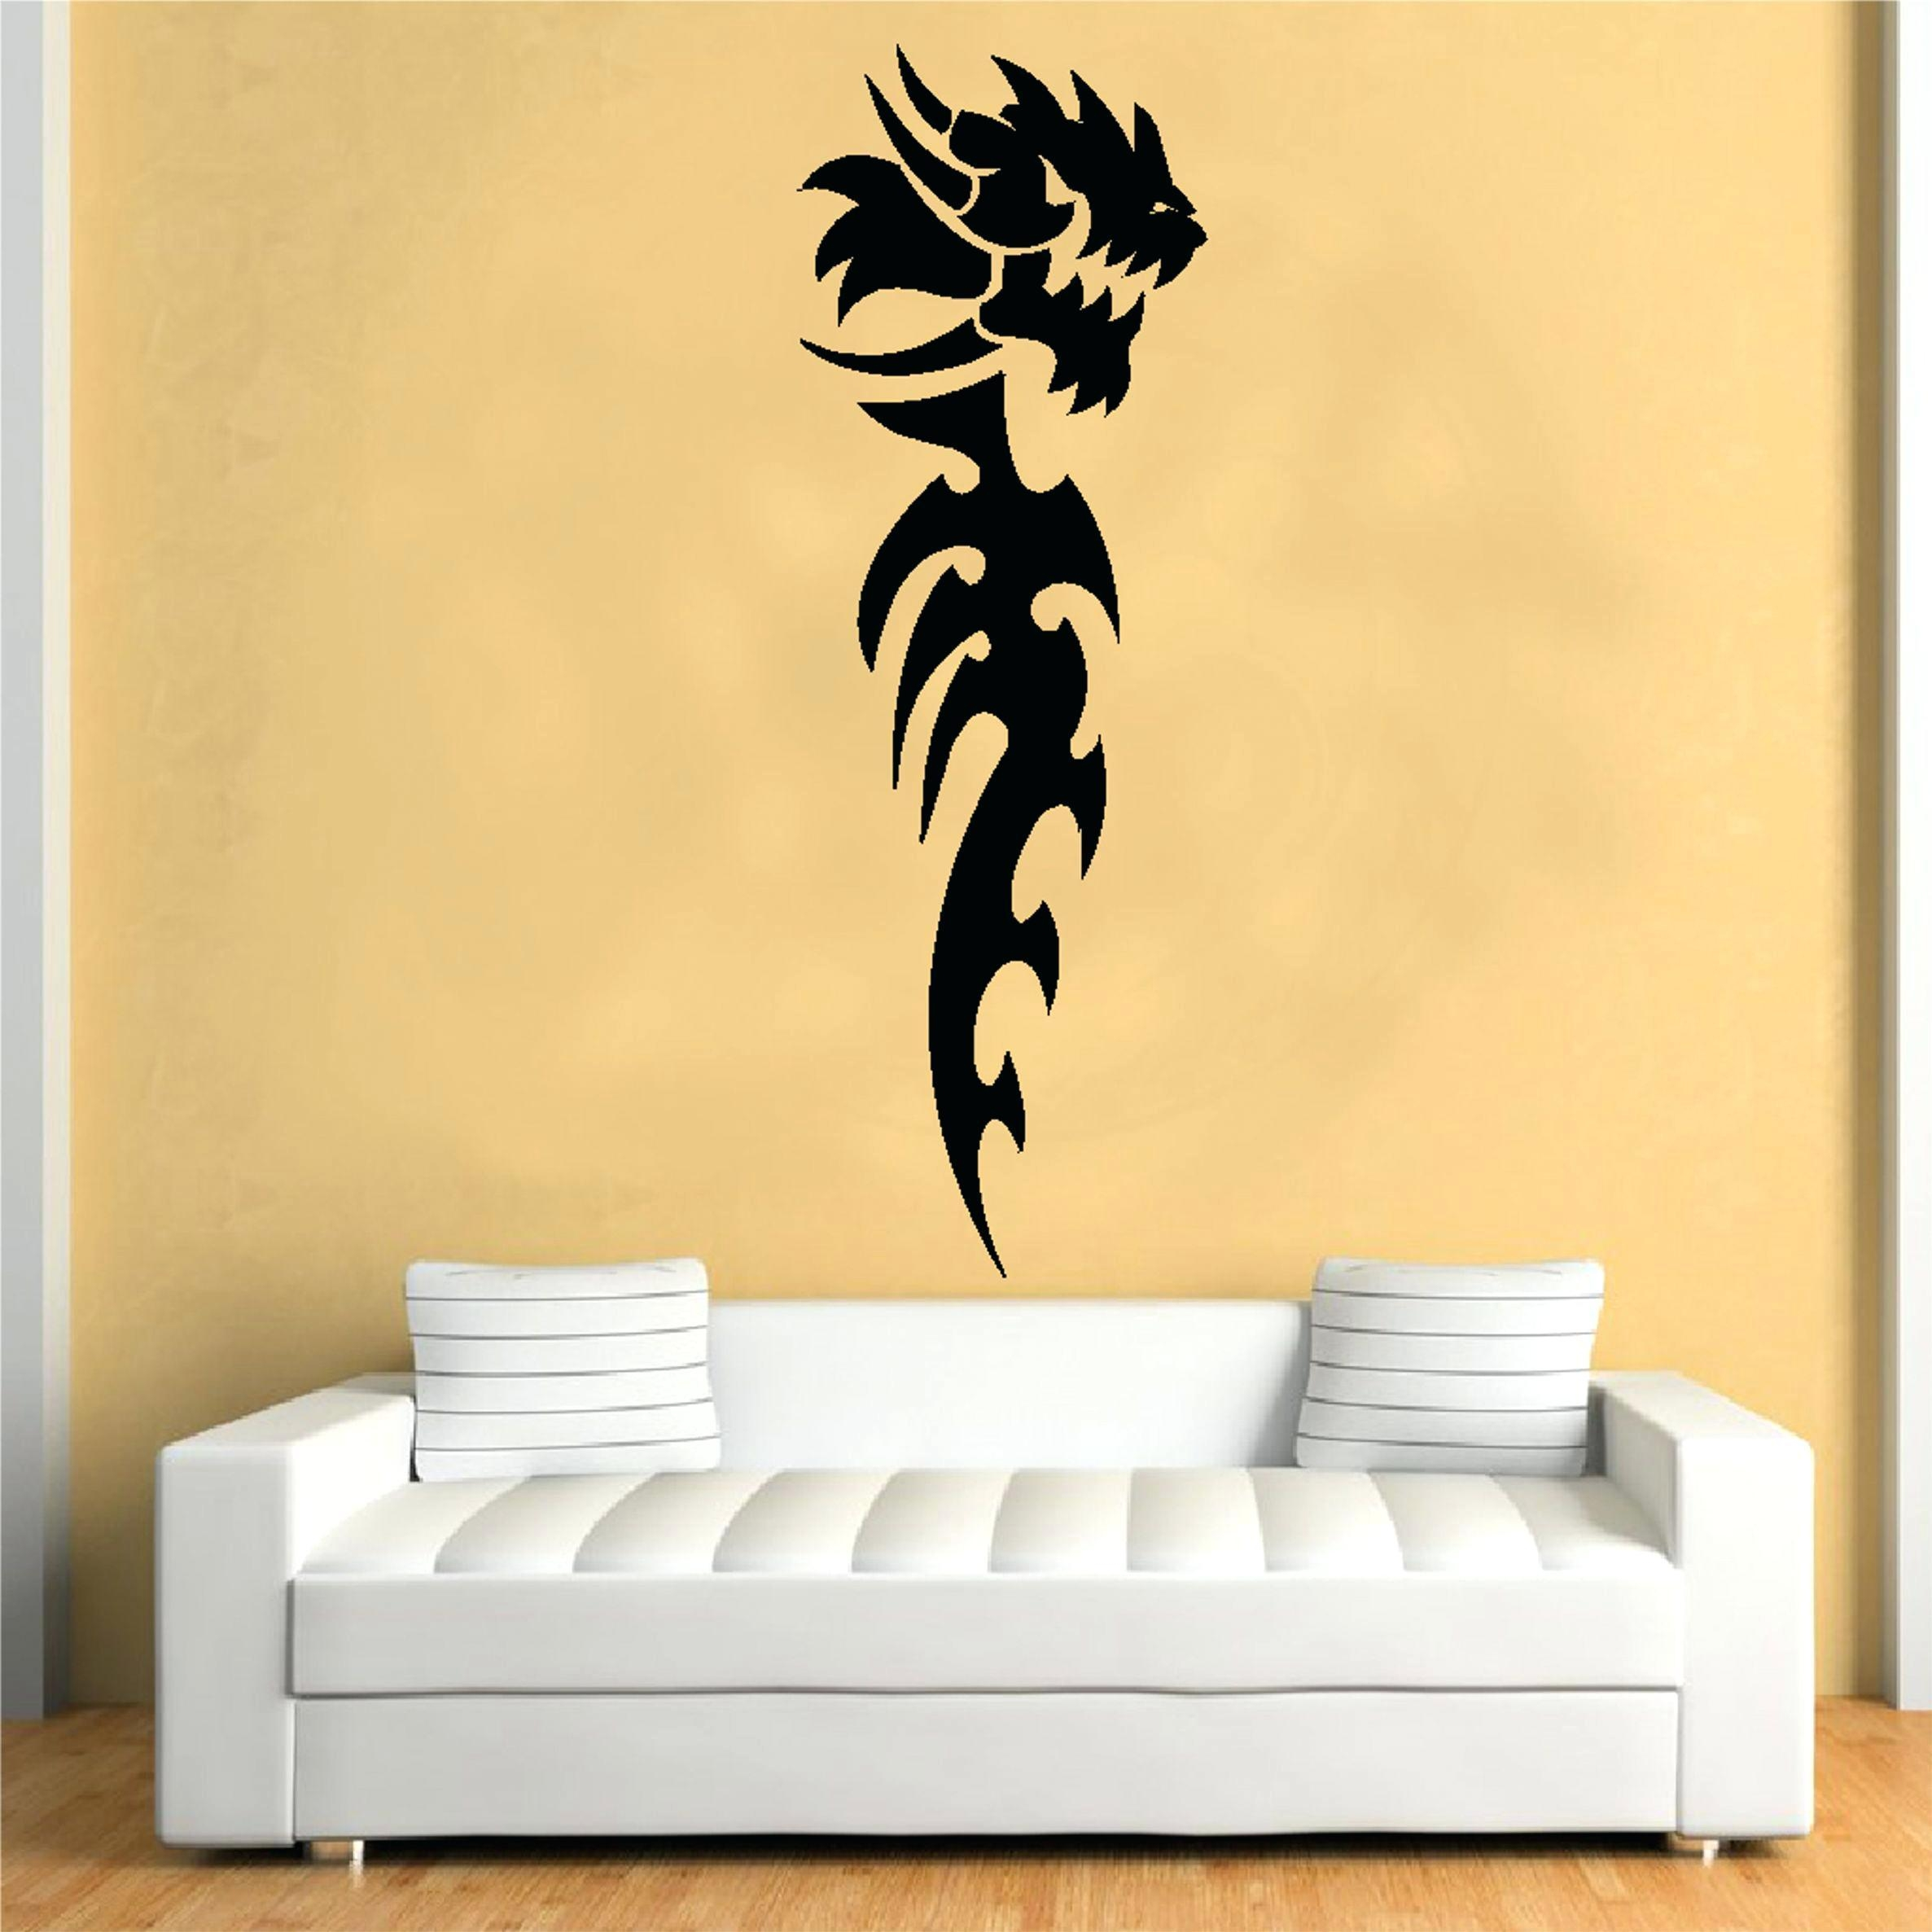 Wall Ideas: Wall Art Stencils. Wall Art Stencils Amazon (View 4 of 20)